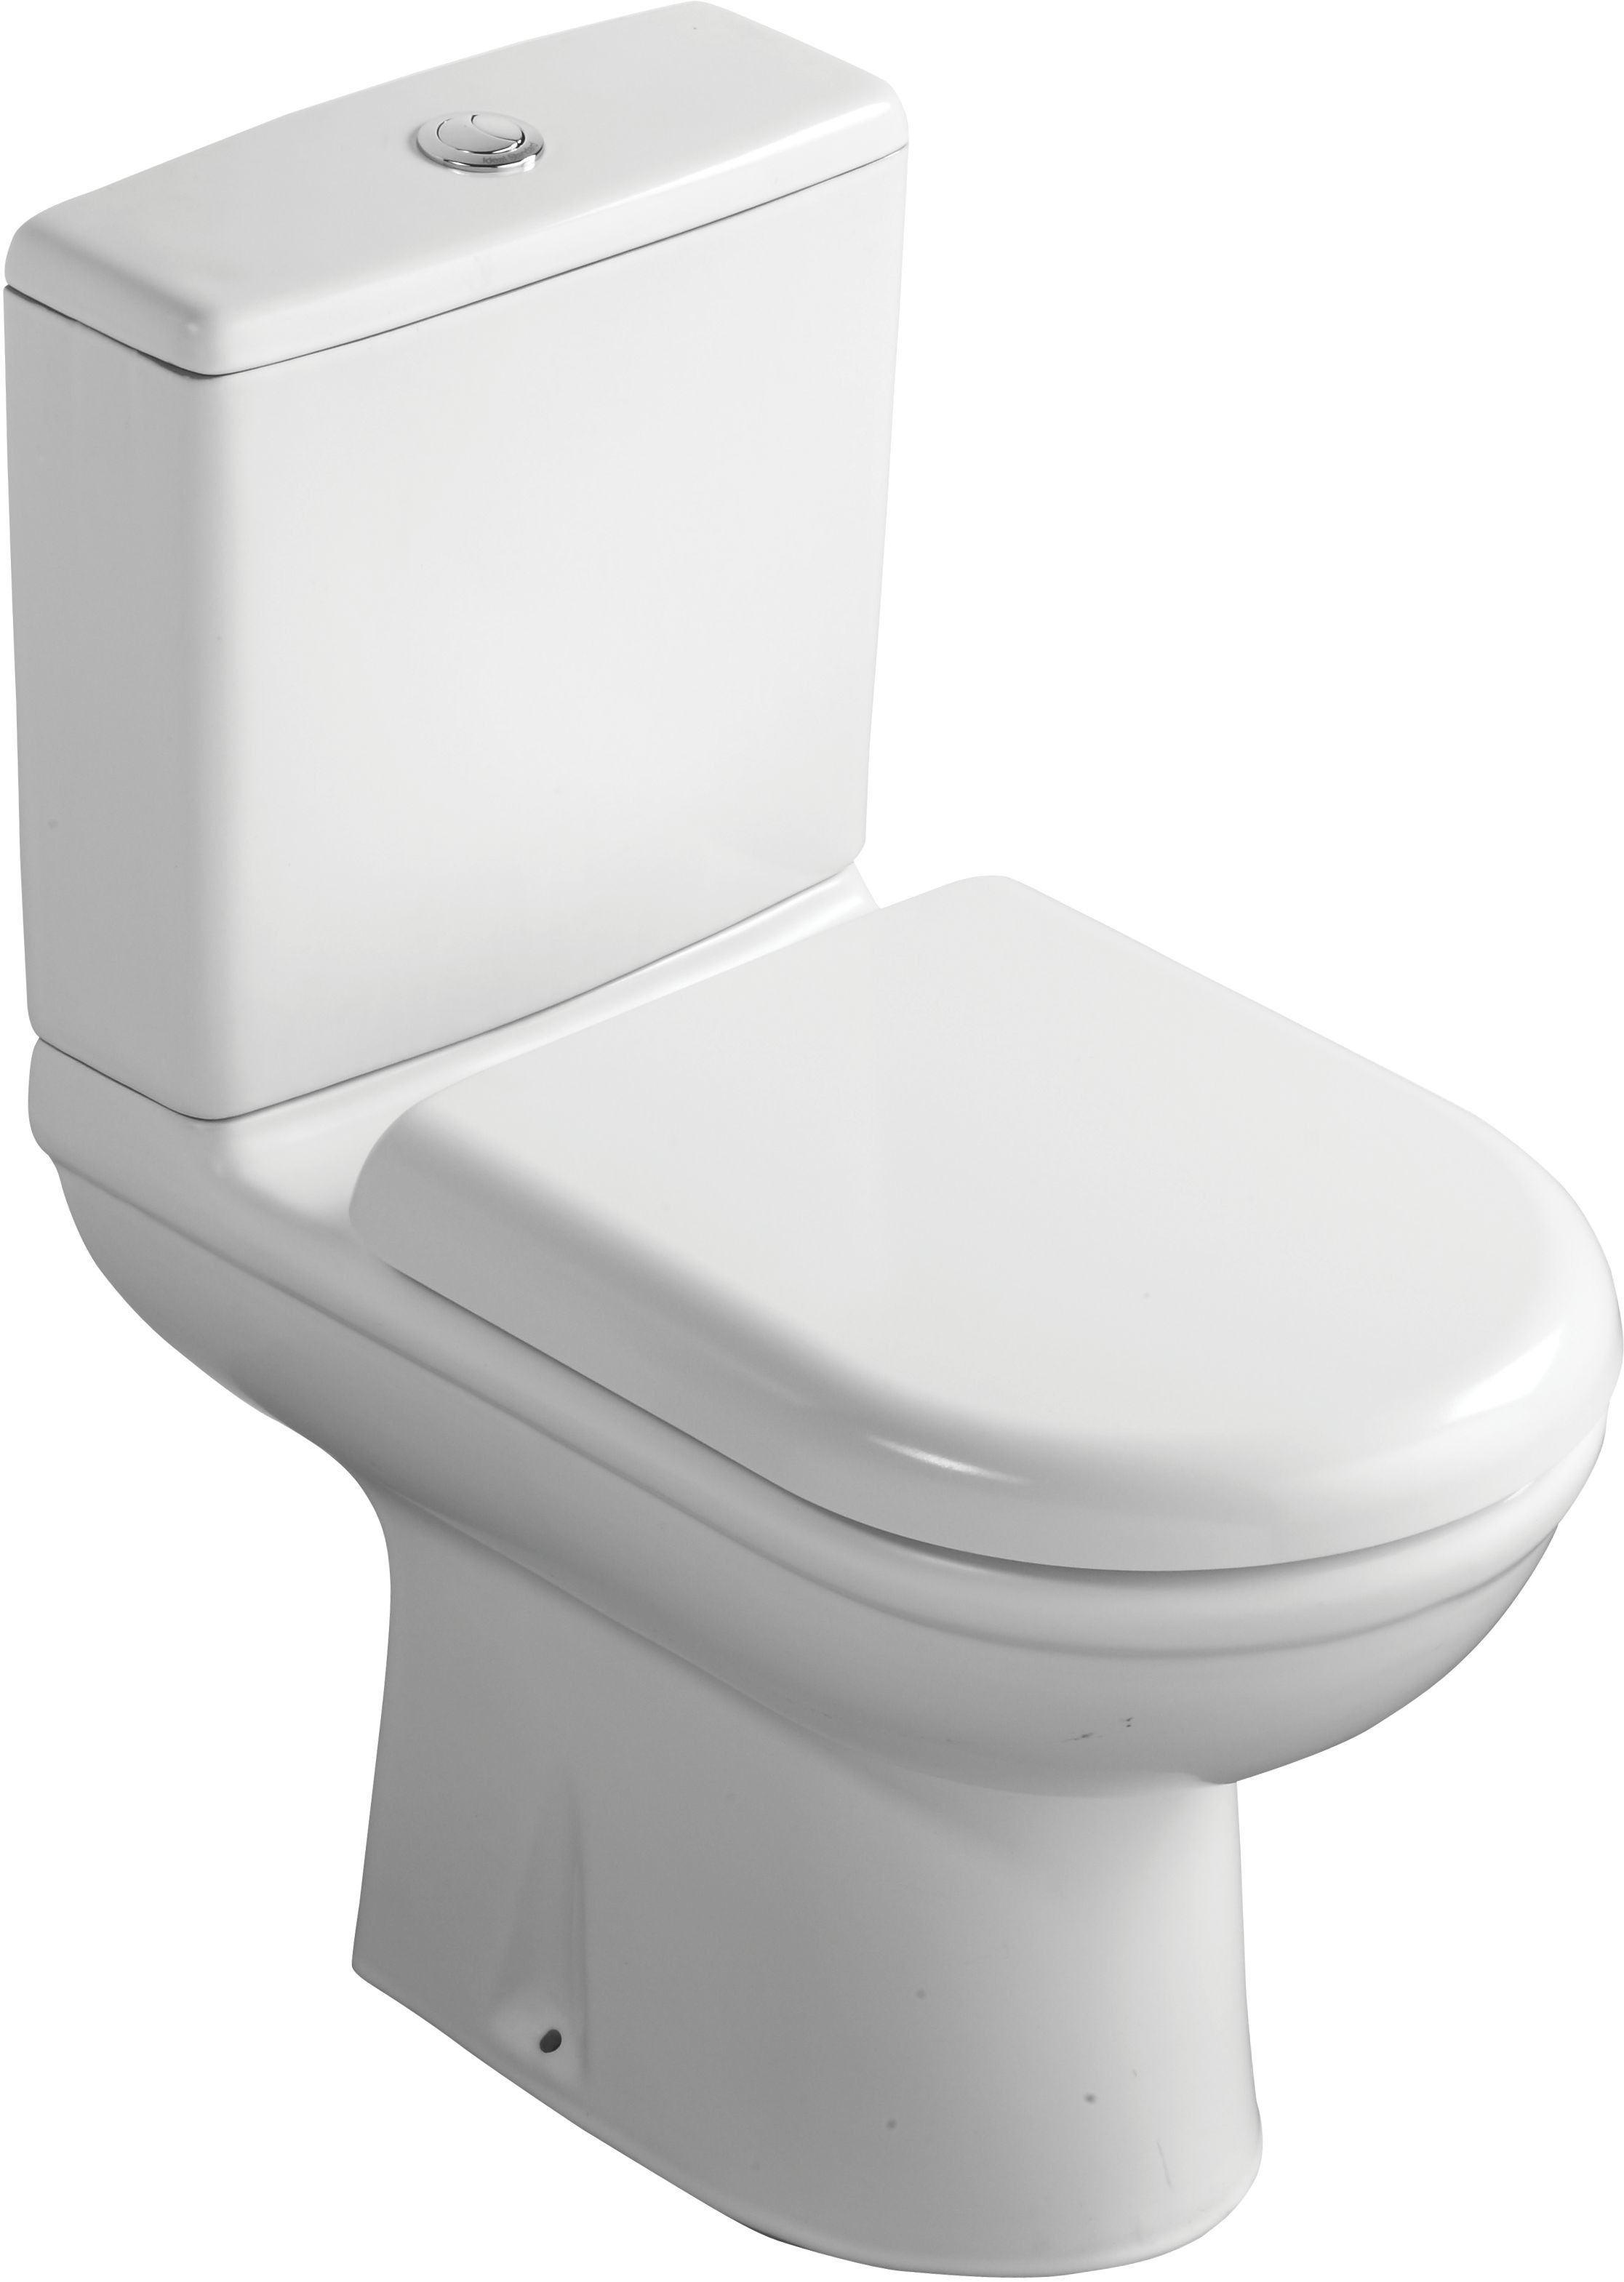 Ideal Standard Della Close-Coupled Toilet with Soft Close Seat ...